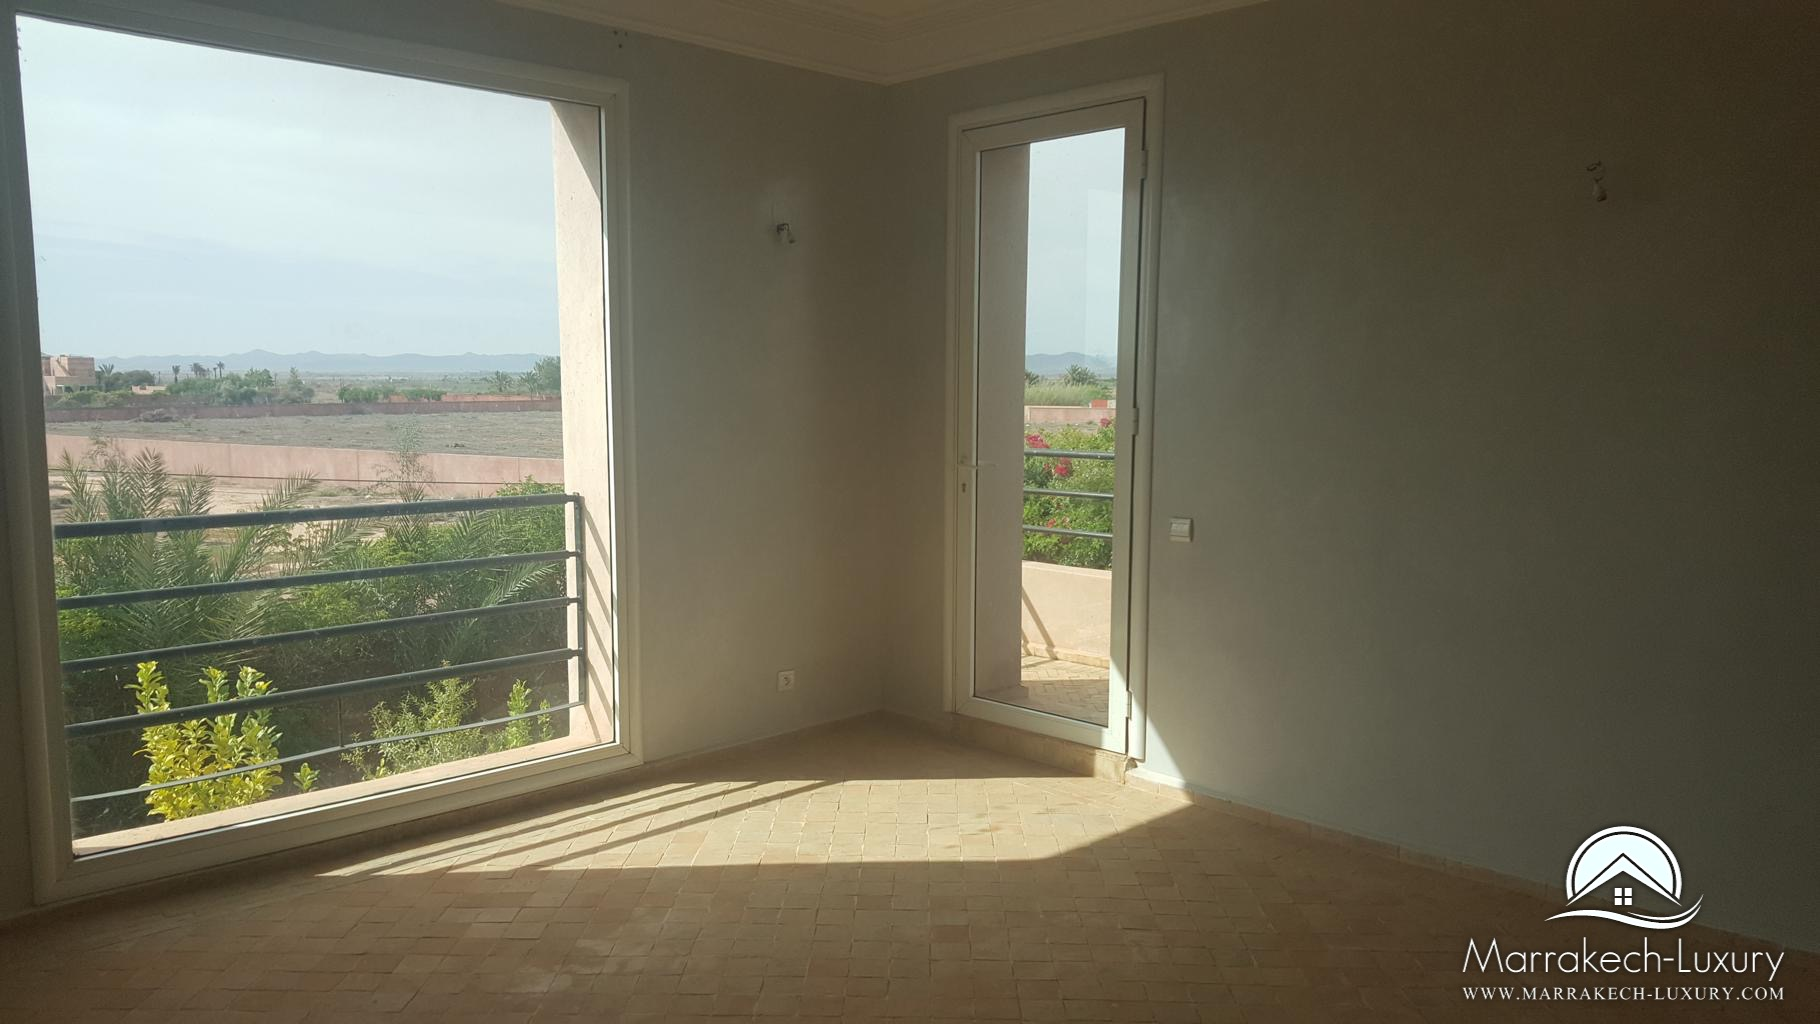 Vilalbab1005ma 34 agence immobili re marrakech acheter for Agence immobiliere 34